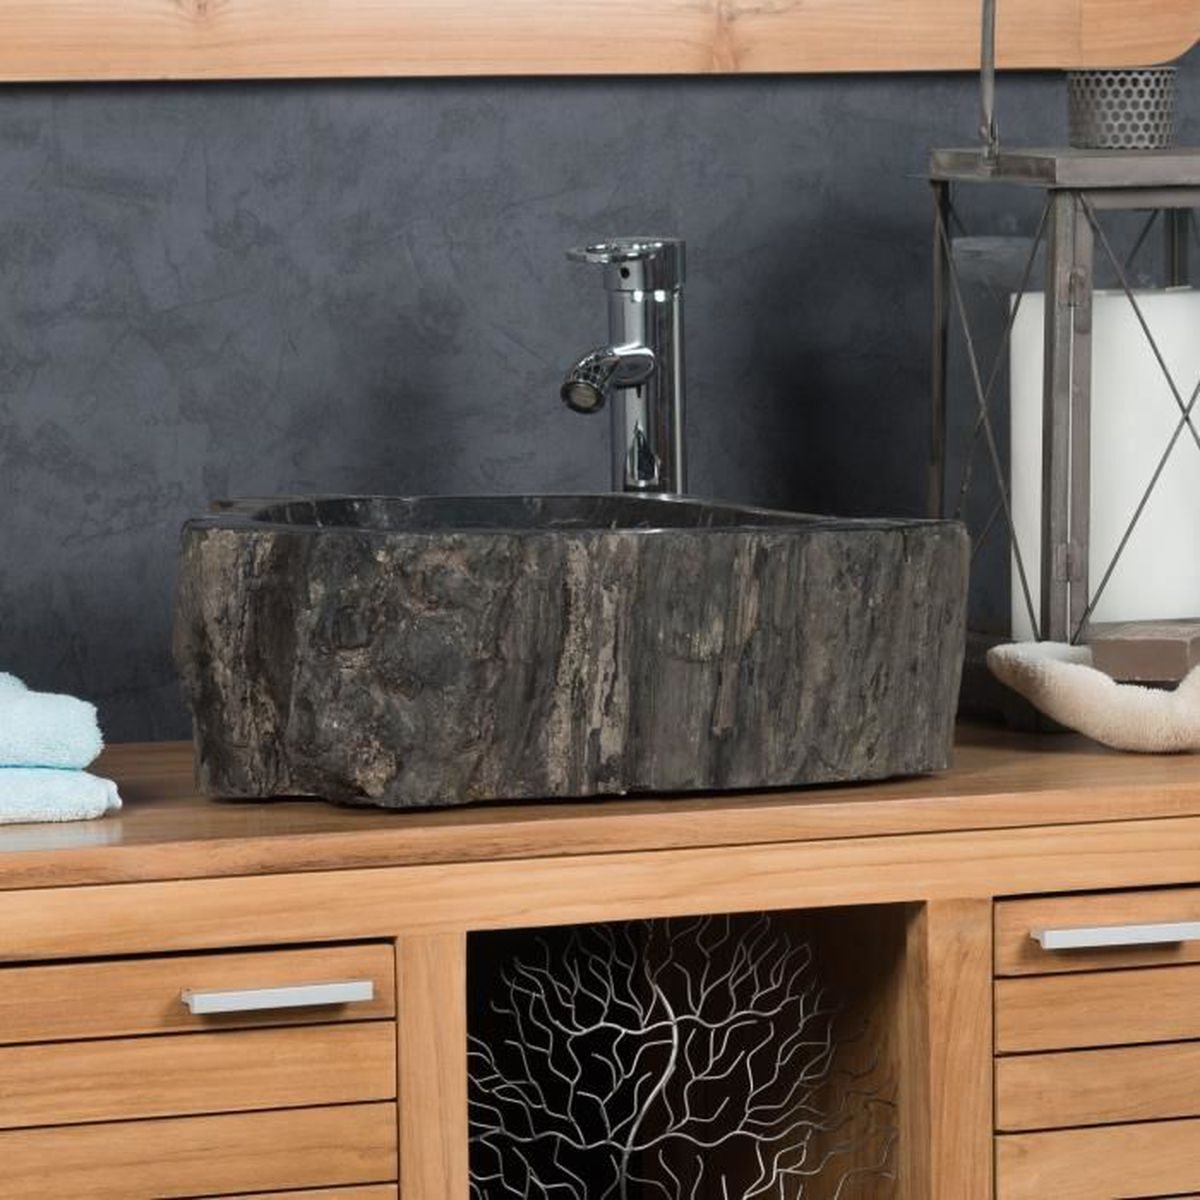 vasque de salle de bain poser en bois p trifi fossilis int rieur noir 45 cm achat vente. Black Bedroom Furniture Sets. Home Design Ideas